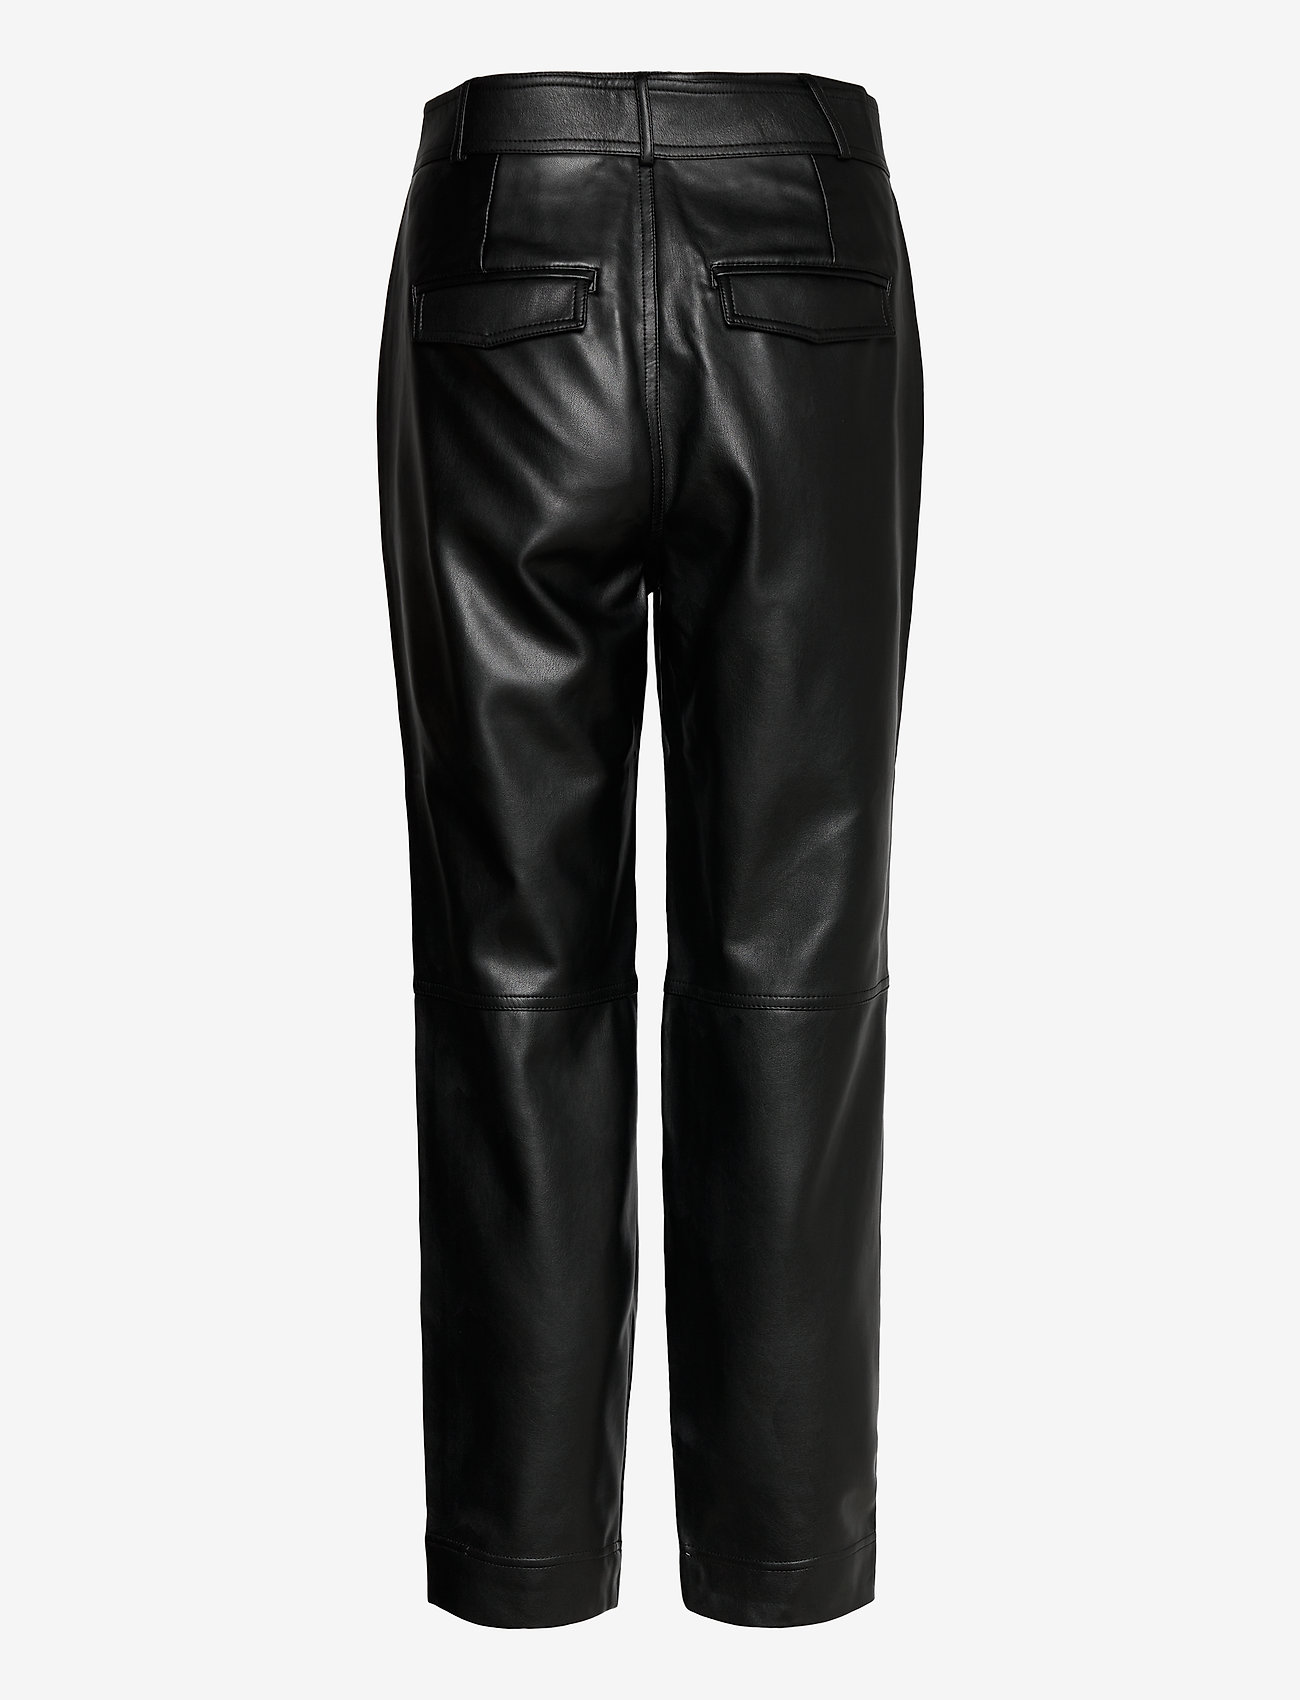 Aria Trousers (Black) (129 €) - Twist & Tango m9D8u